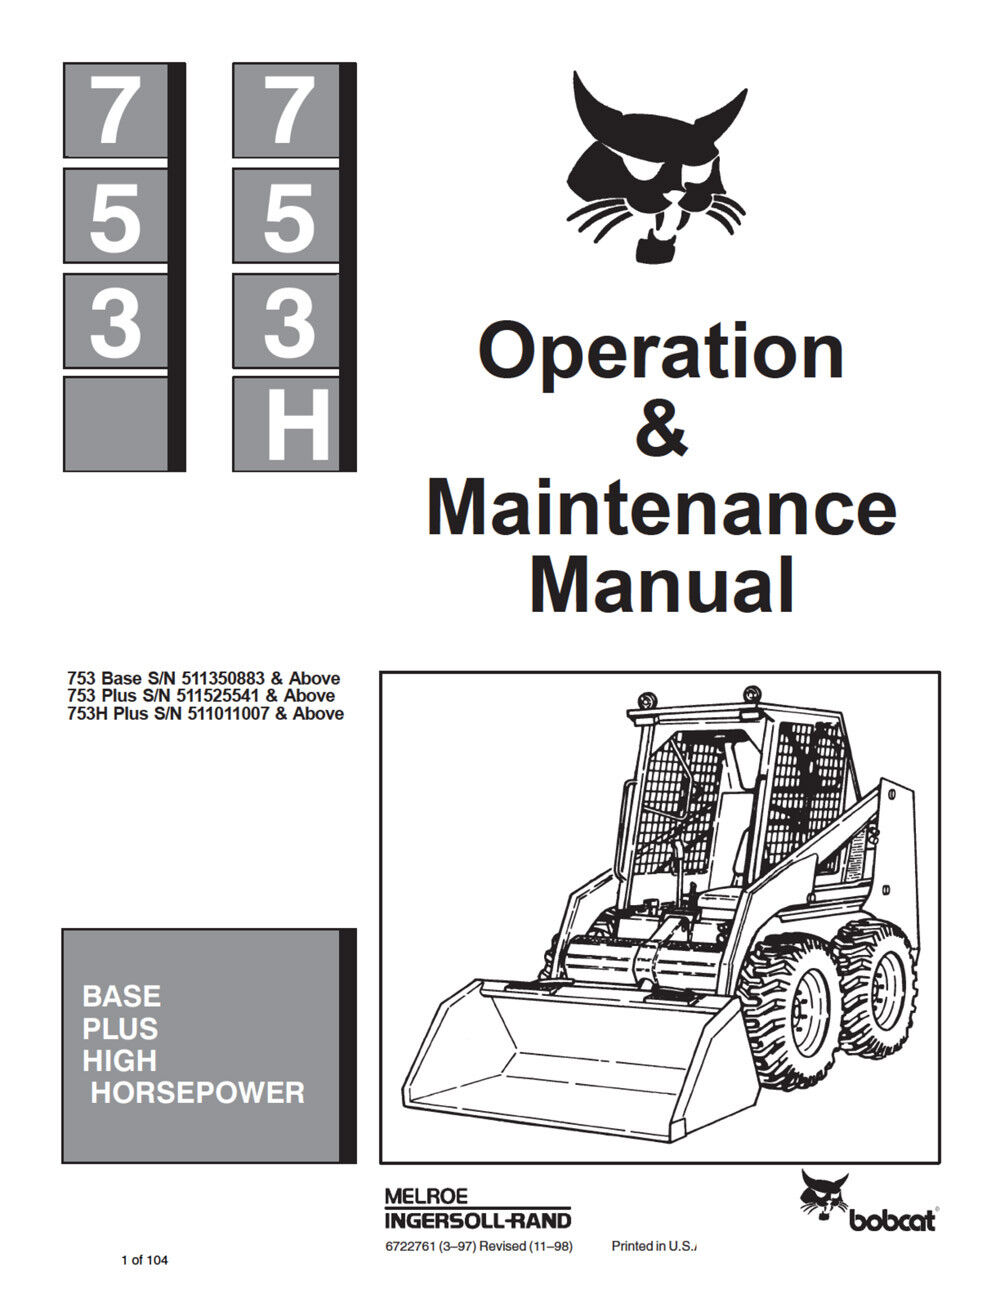 New Bobcat 753 Skid Steer Repair Service Manual 1990